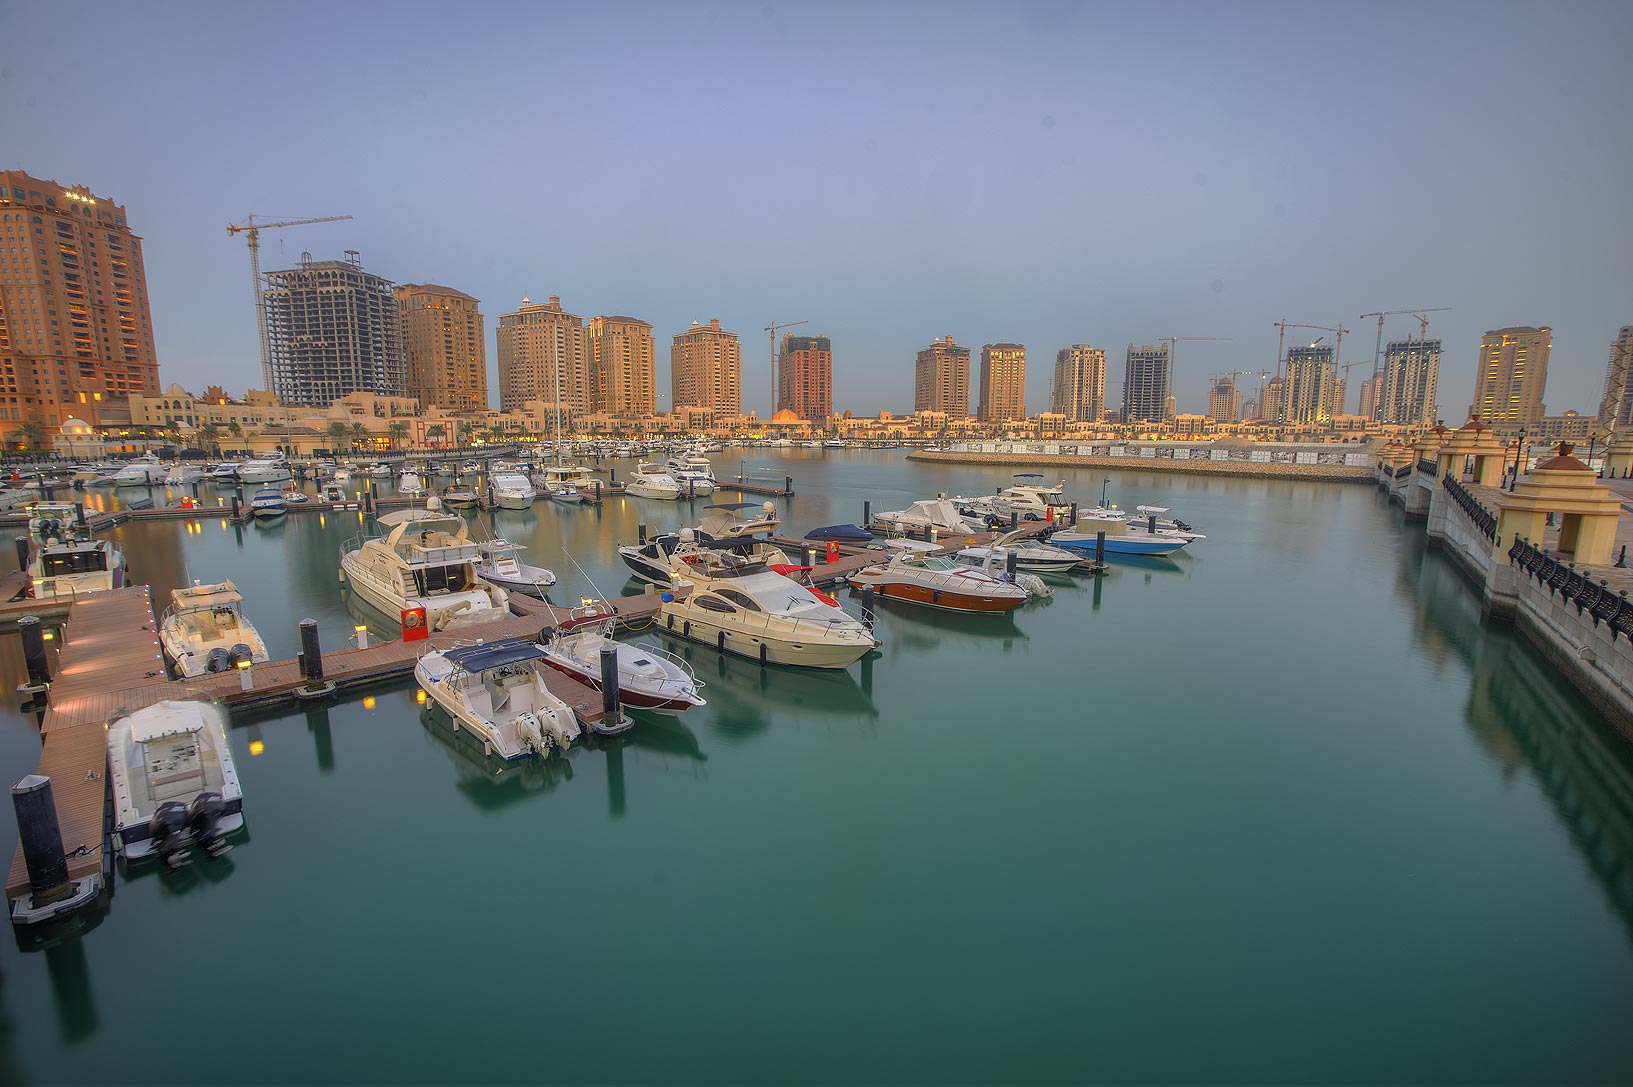 Pier E in Porto Arabia in the Pearl Qatar development. Doha, Qatar